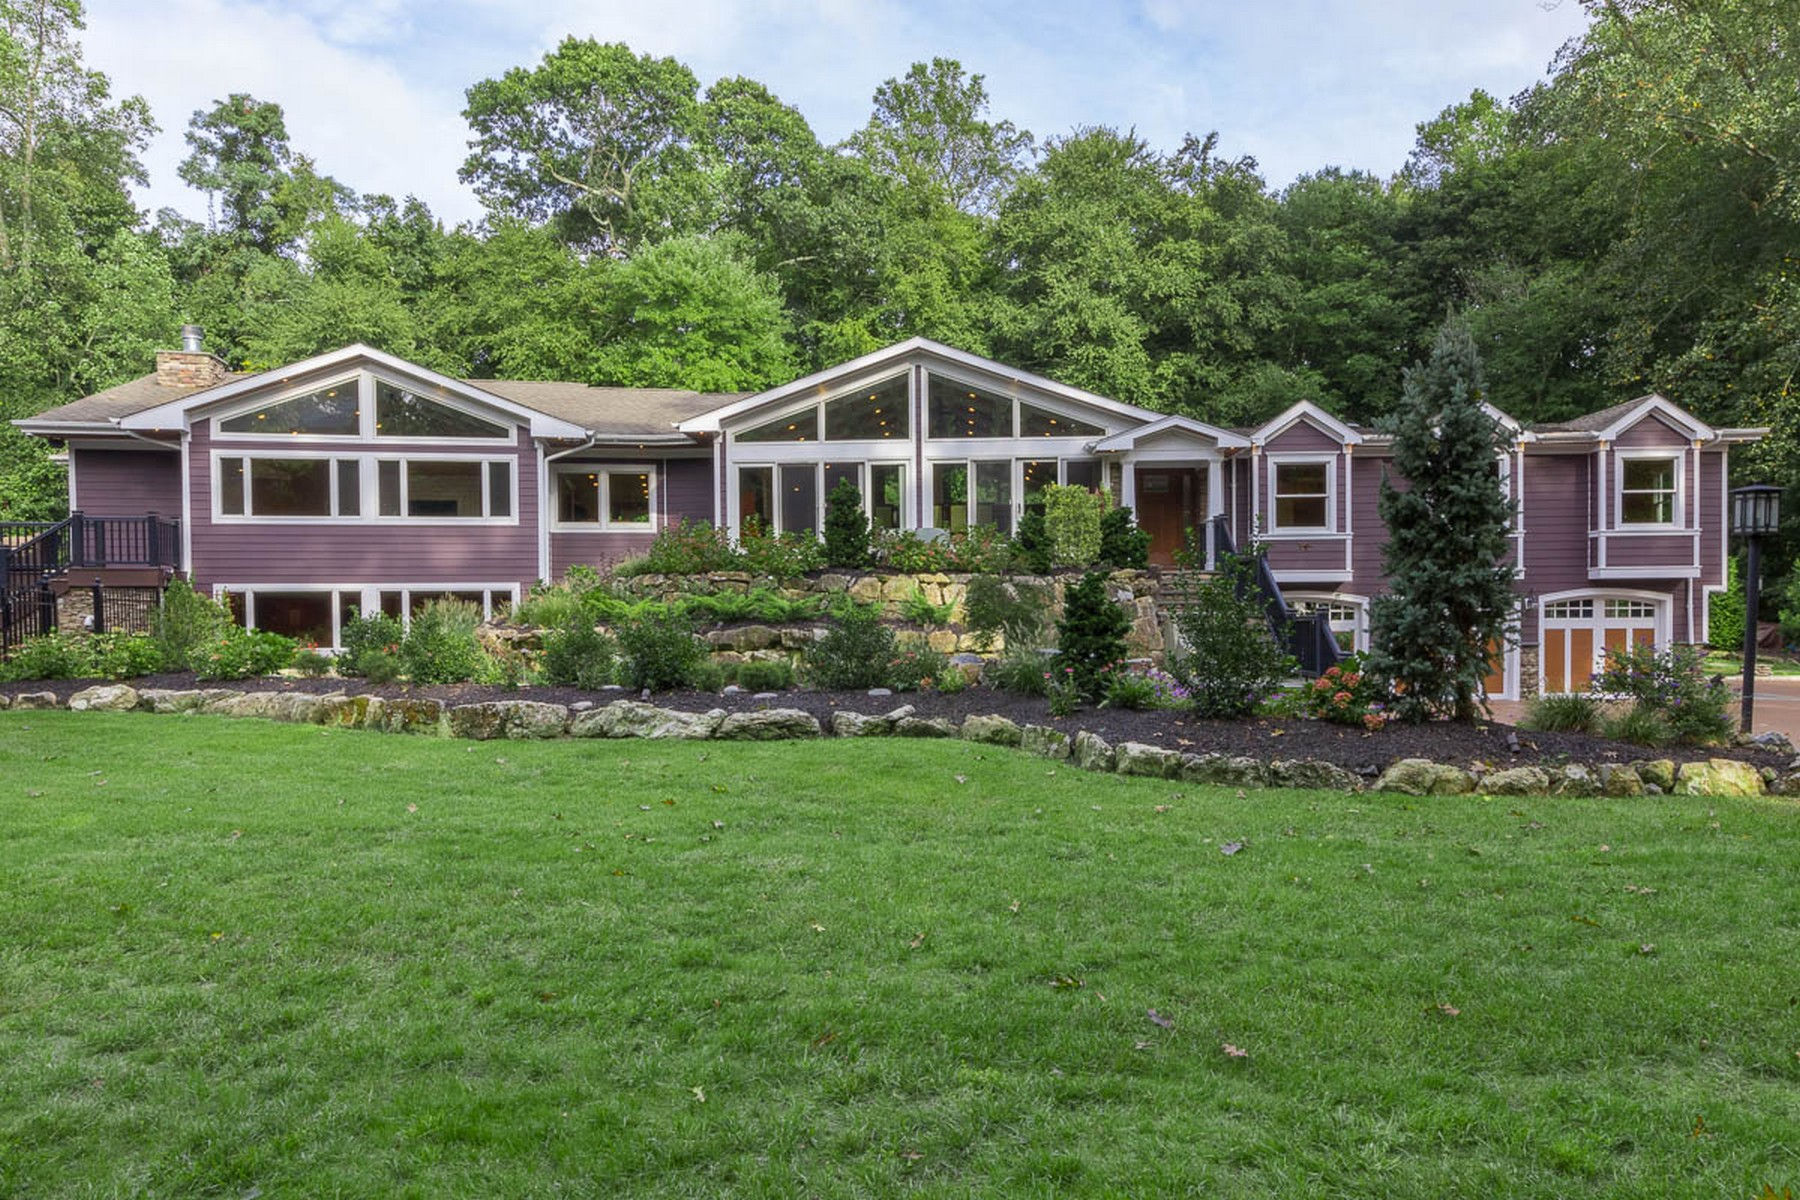 Single Family Homes for Sale at Head Of Harbor 12 Fells Way Head Of The Harbor, New York 11780 United States